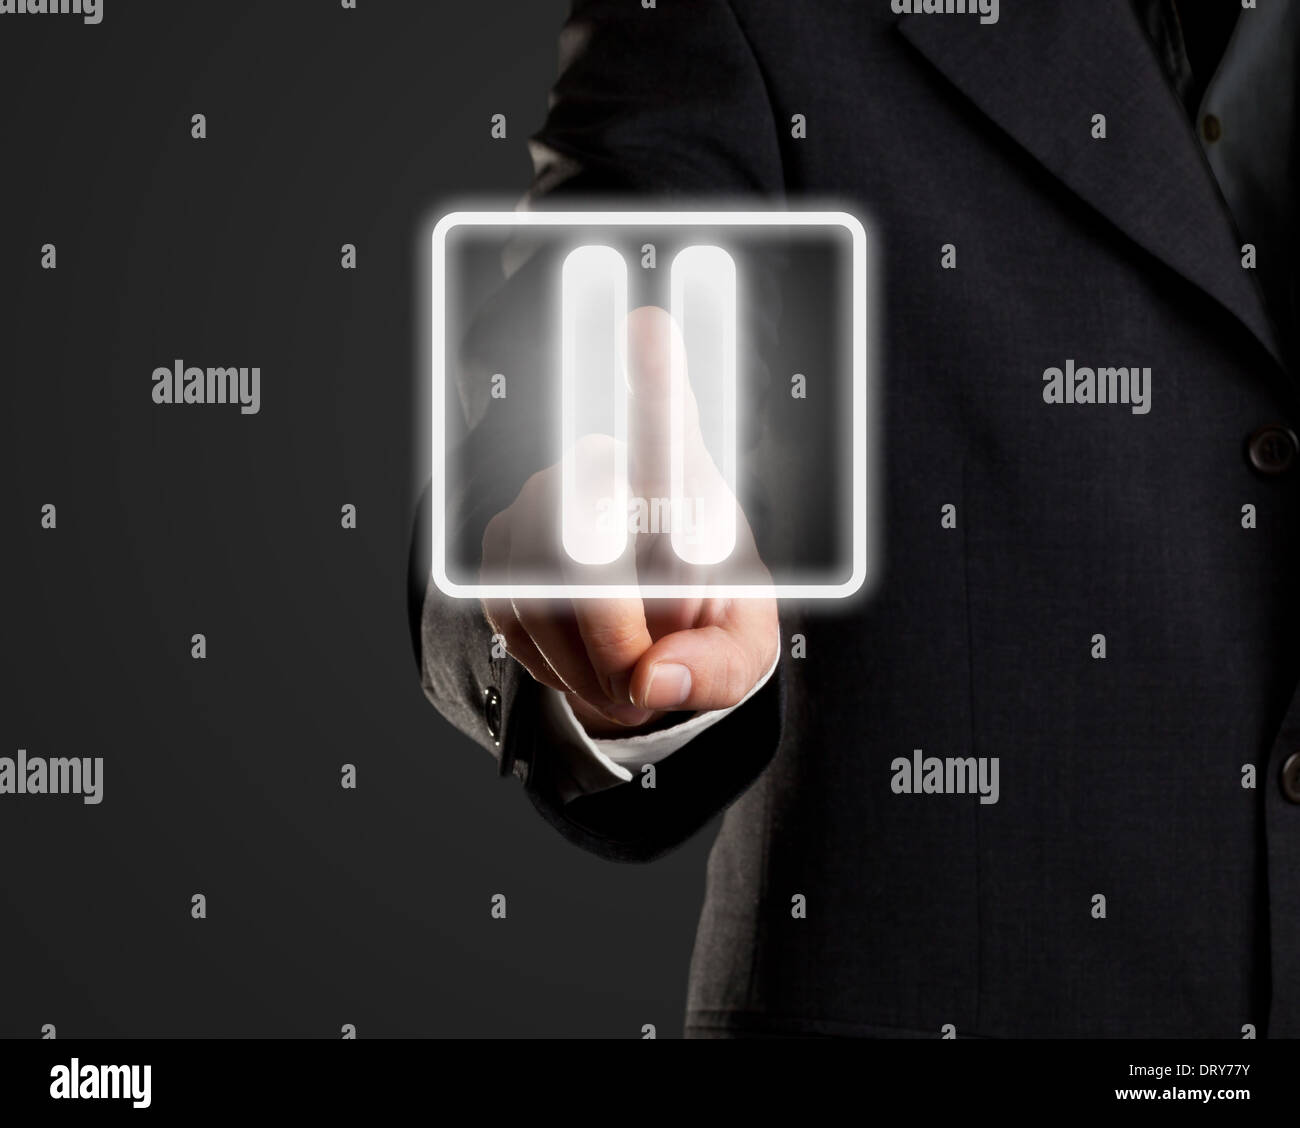 Businessman pressing pause button on virtual screen - Stock Image